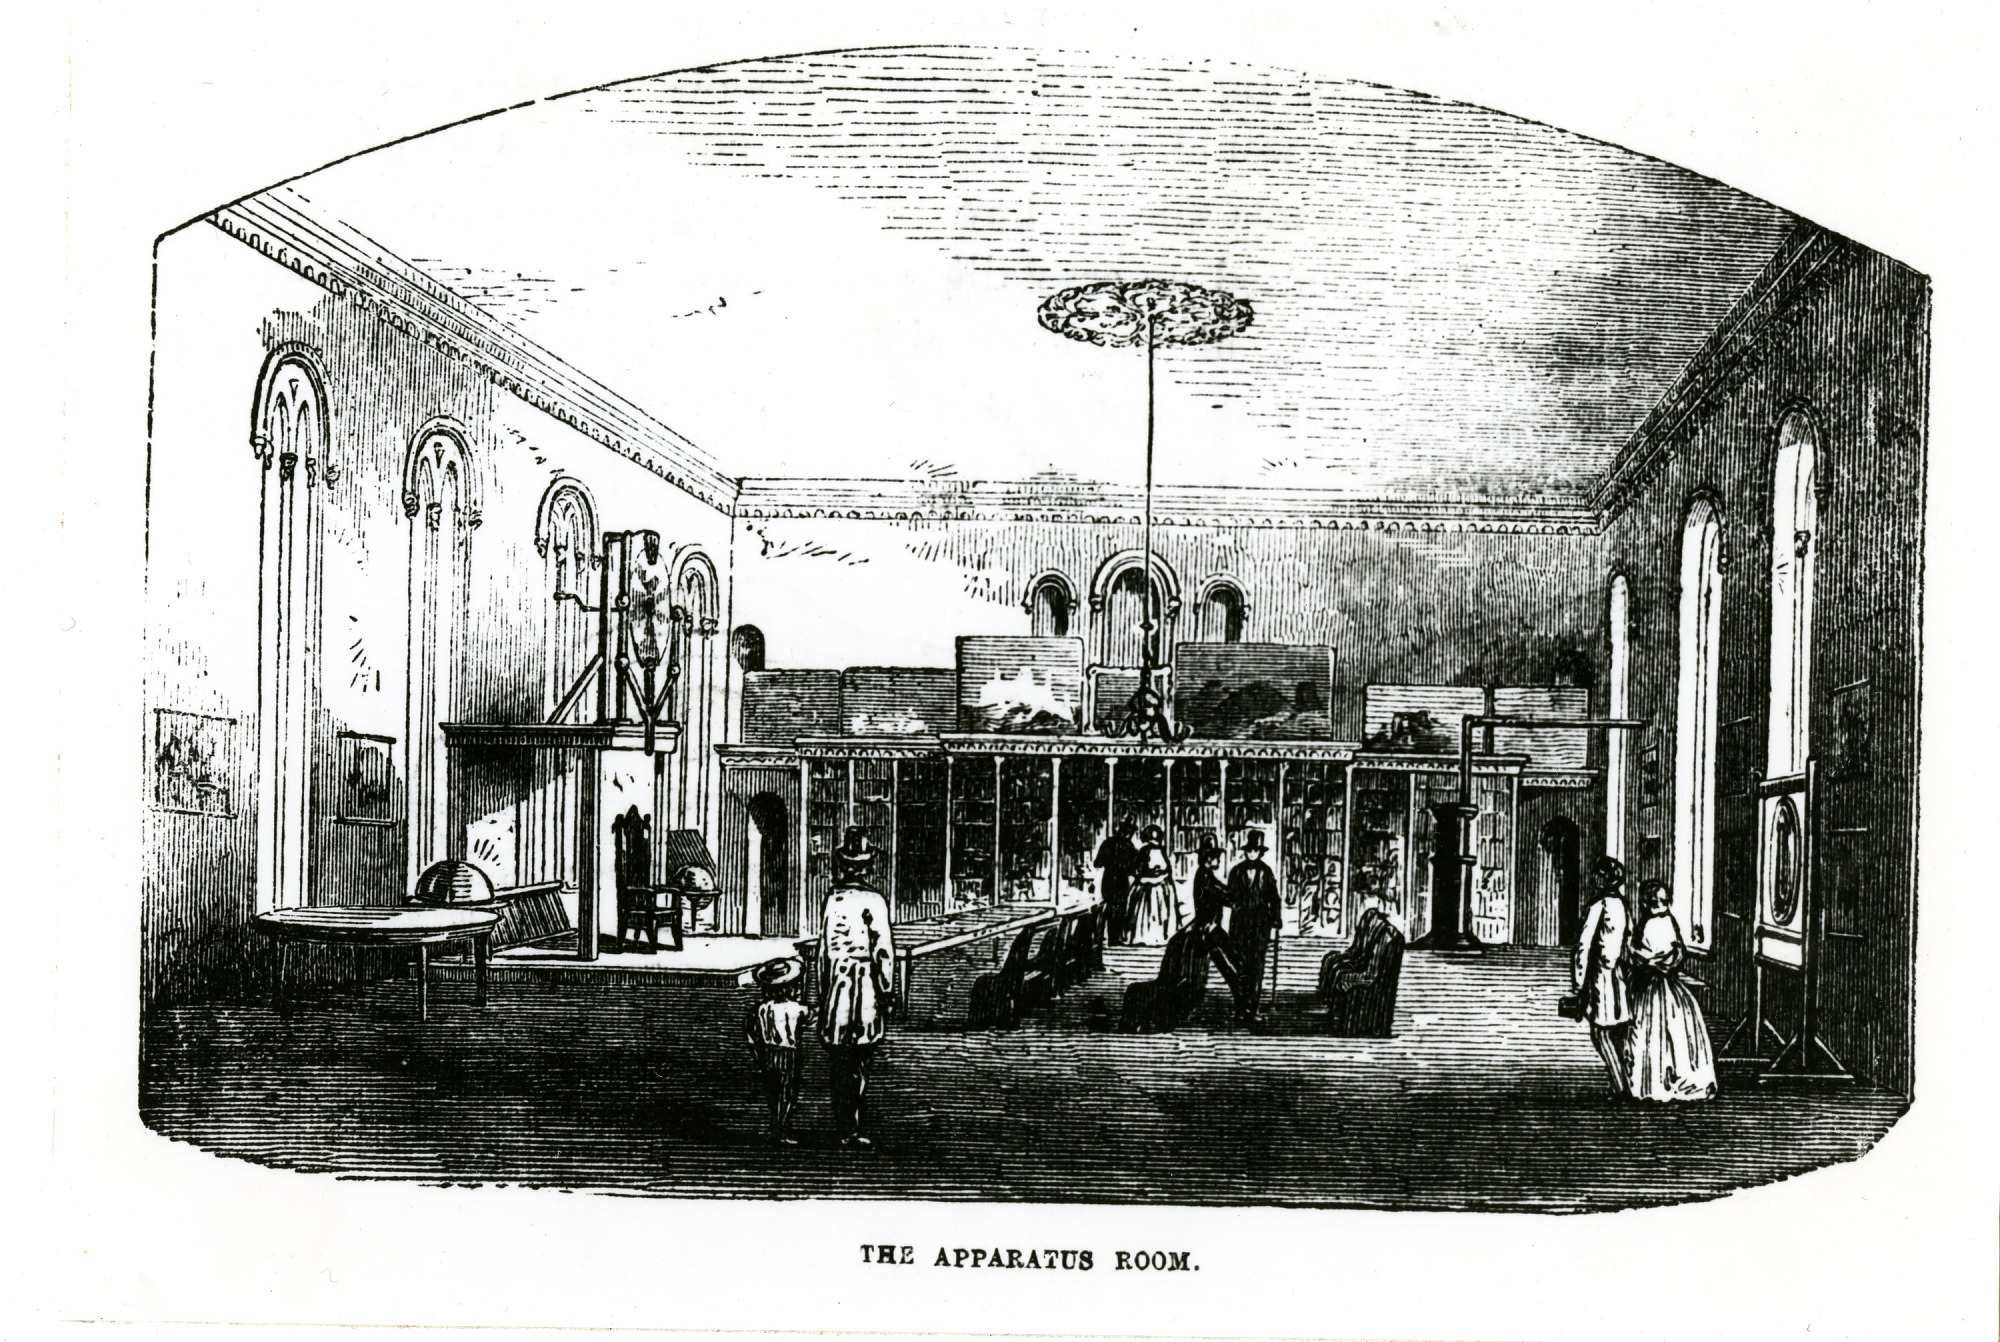 Image is of Apparatus Room in Smithsonian Institution Castle with Dr. Hare's apparatus on display, 1857, Smithsonian Institution Archives, negative number SIA2011-2394.